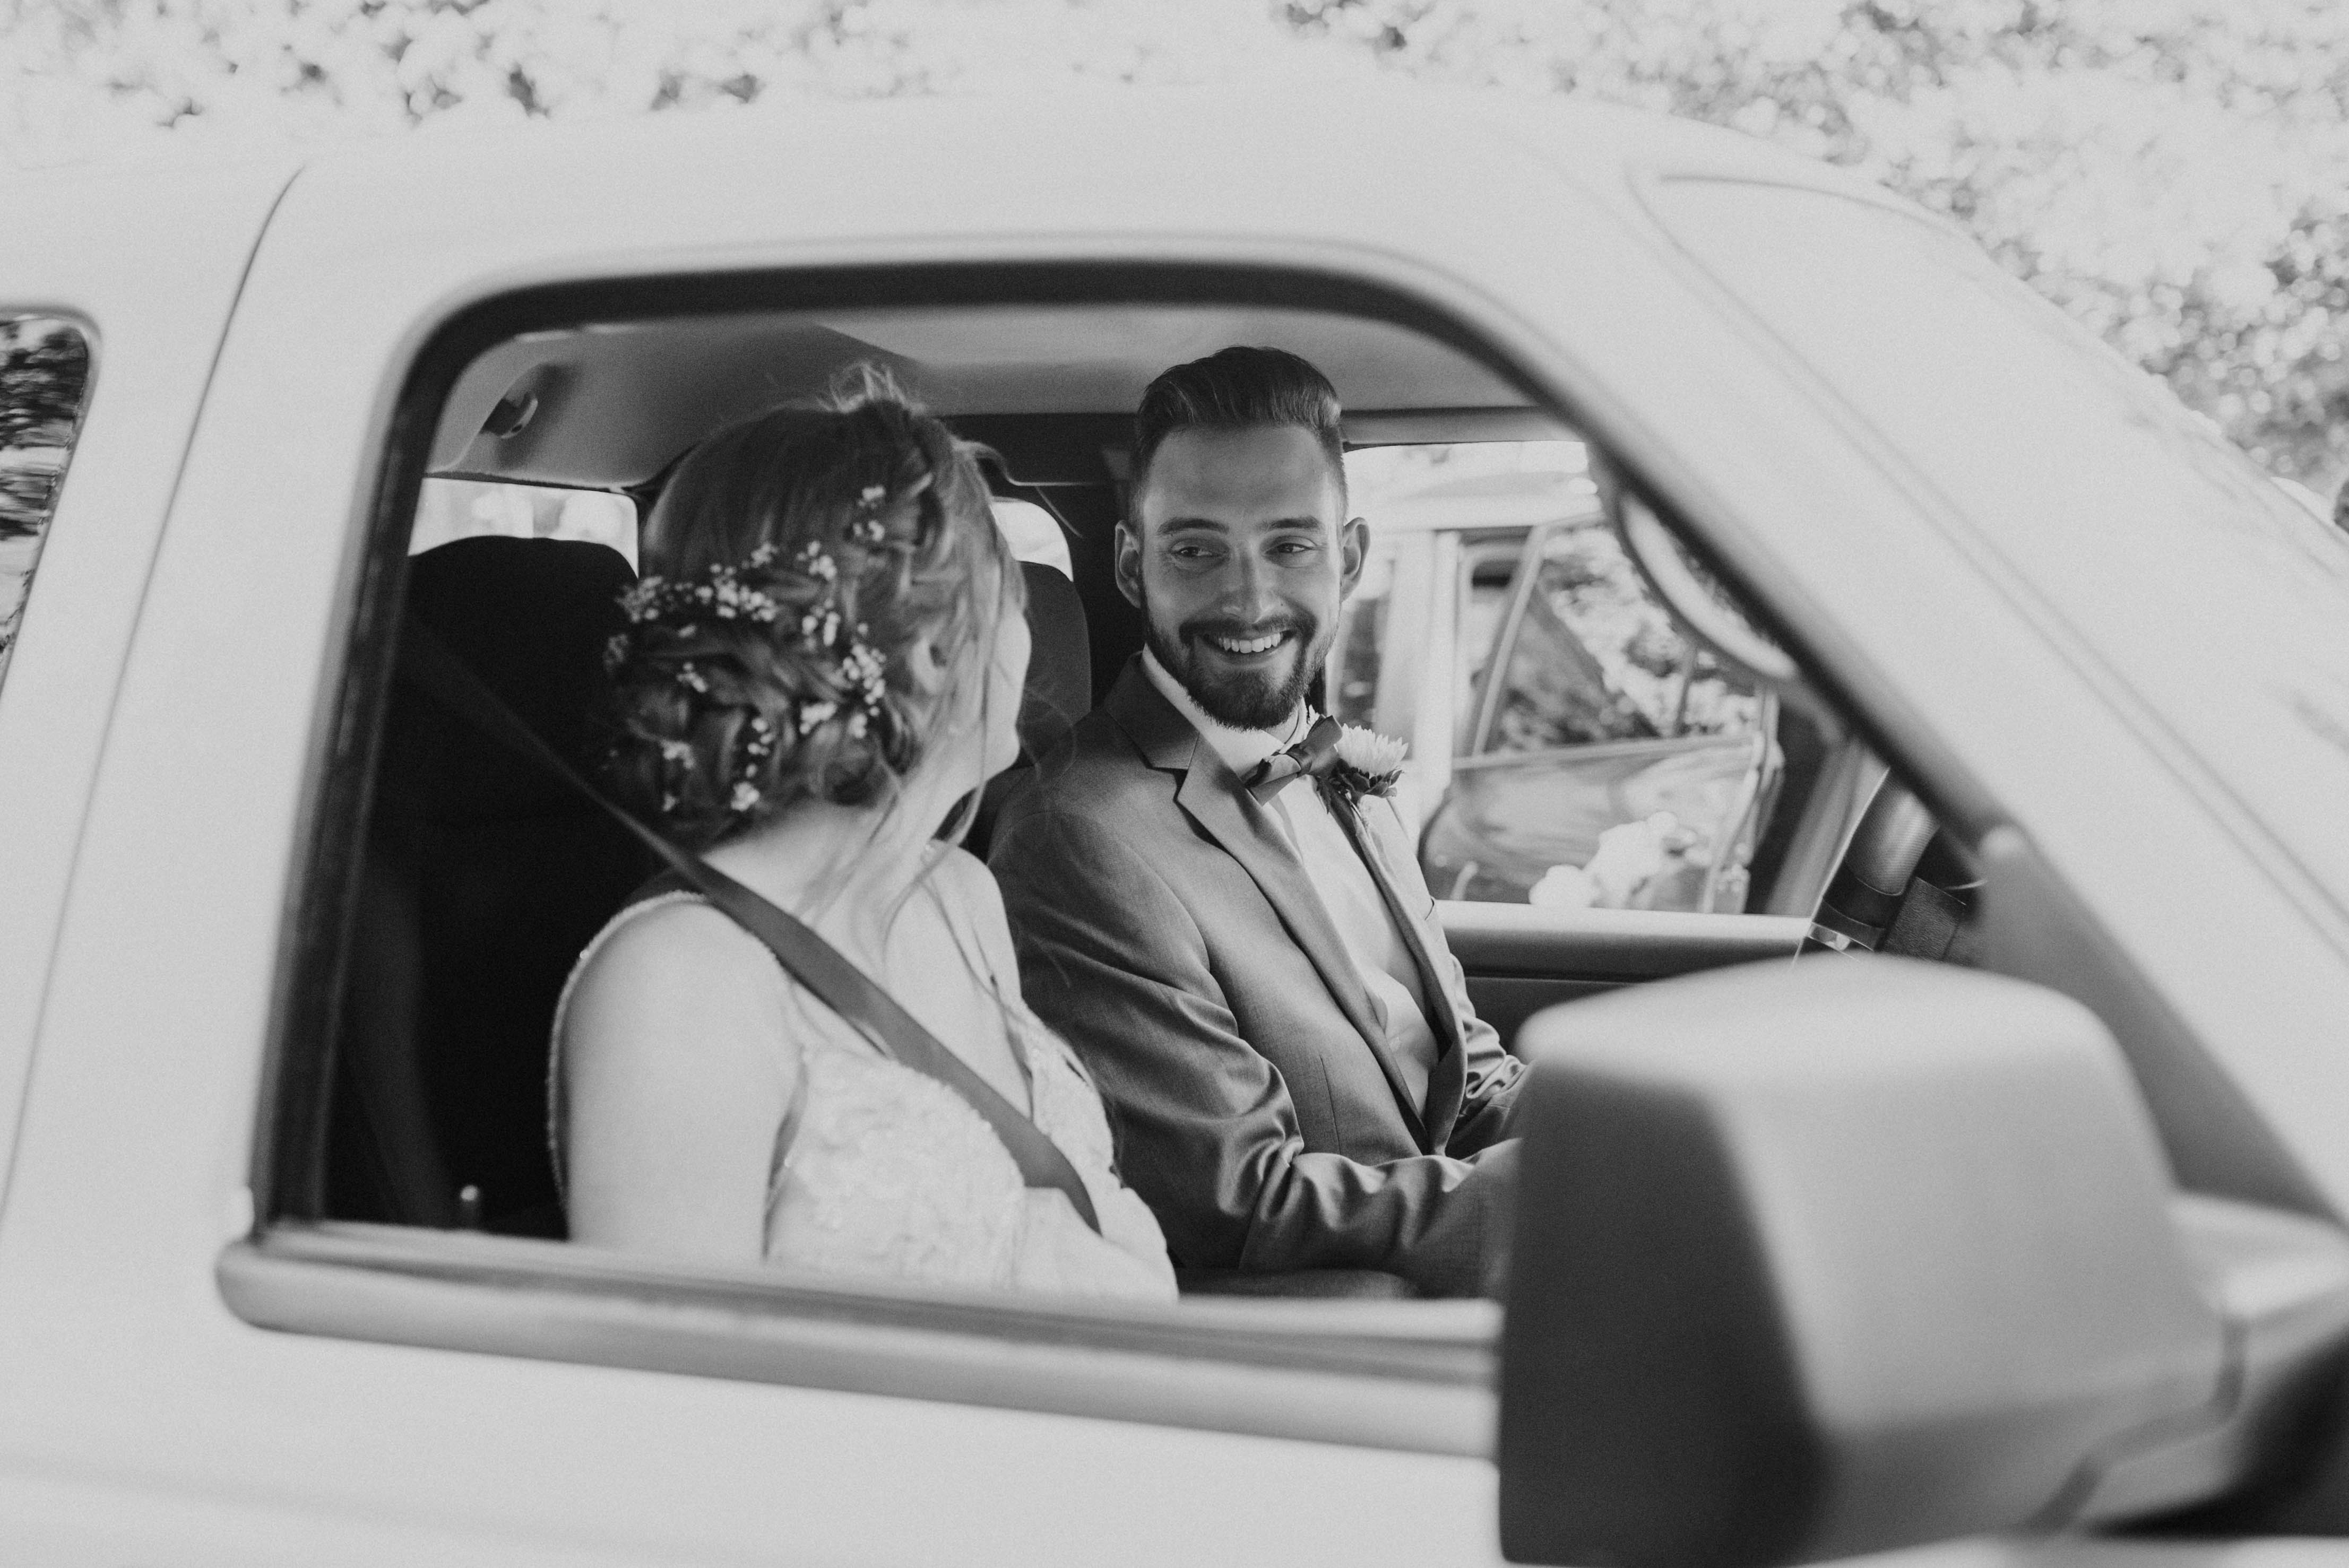 Bride and groom in car driving towards their honeymoon, wedding photography inspiration